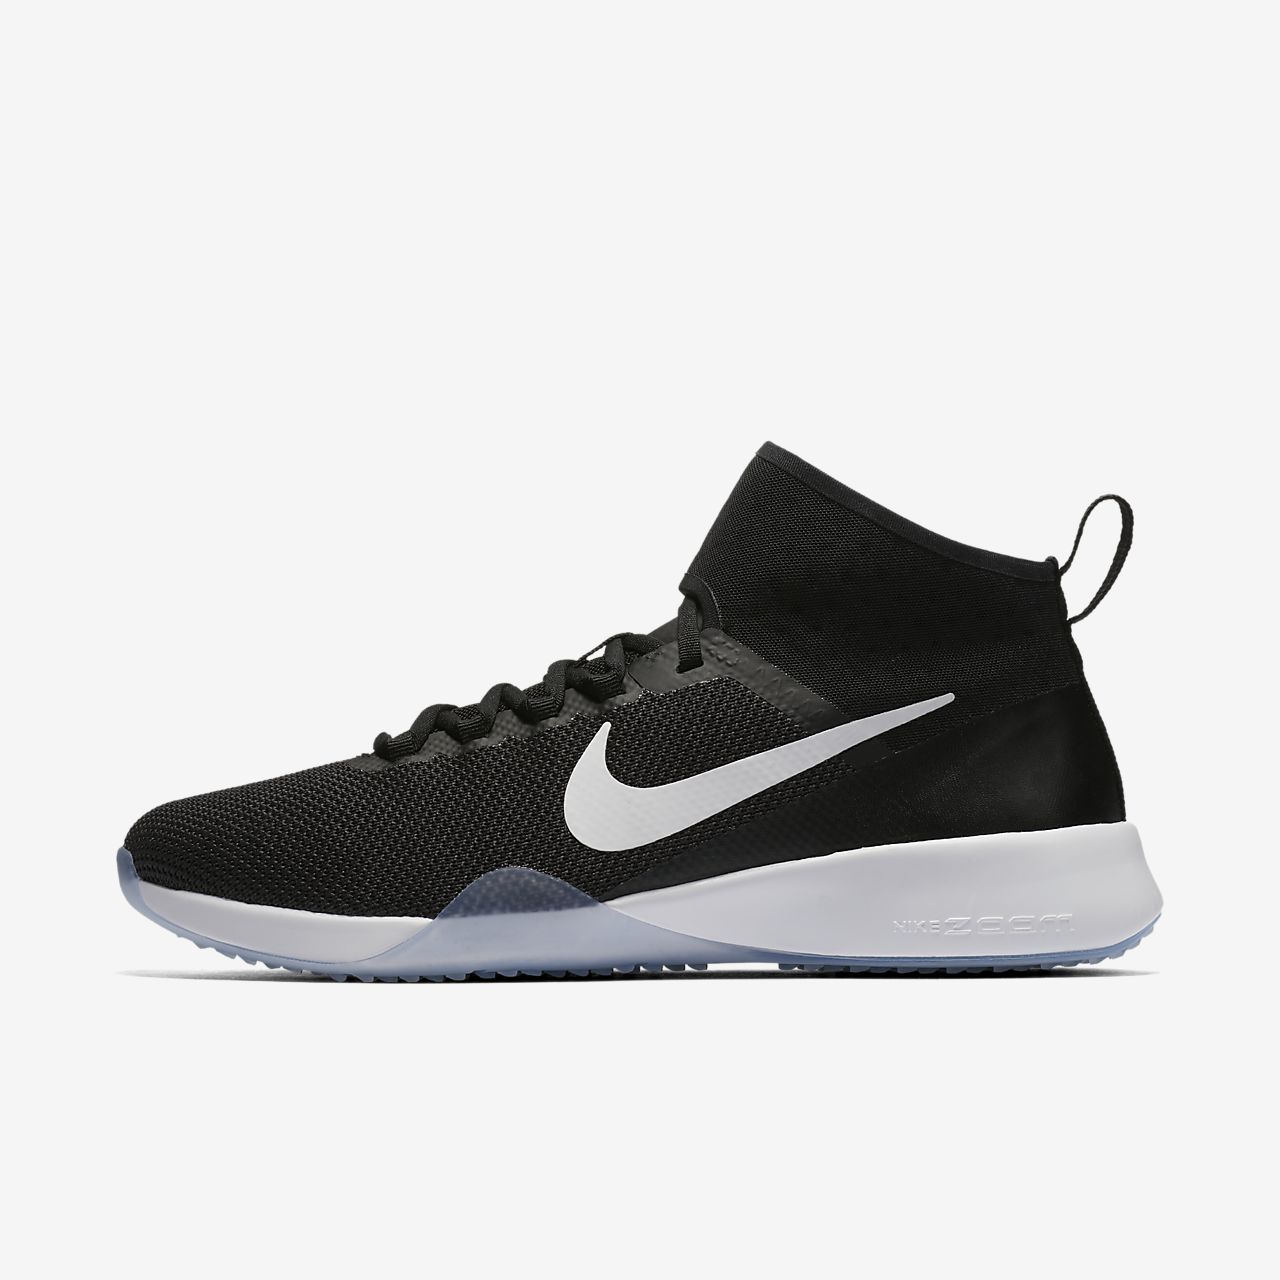 Nike - Air Zoom Strong 2 Femmes Chaussure d' gris Chaussures à lacets Xposed Casual homme x8VJ0wJU